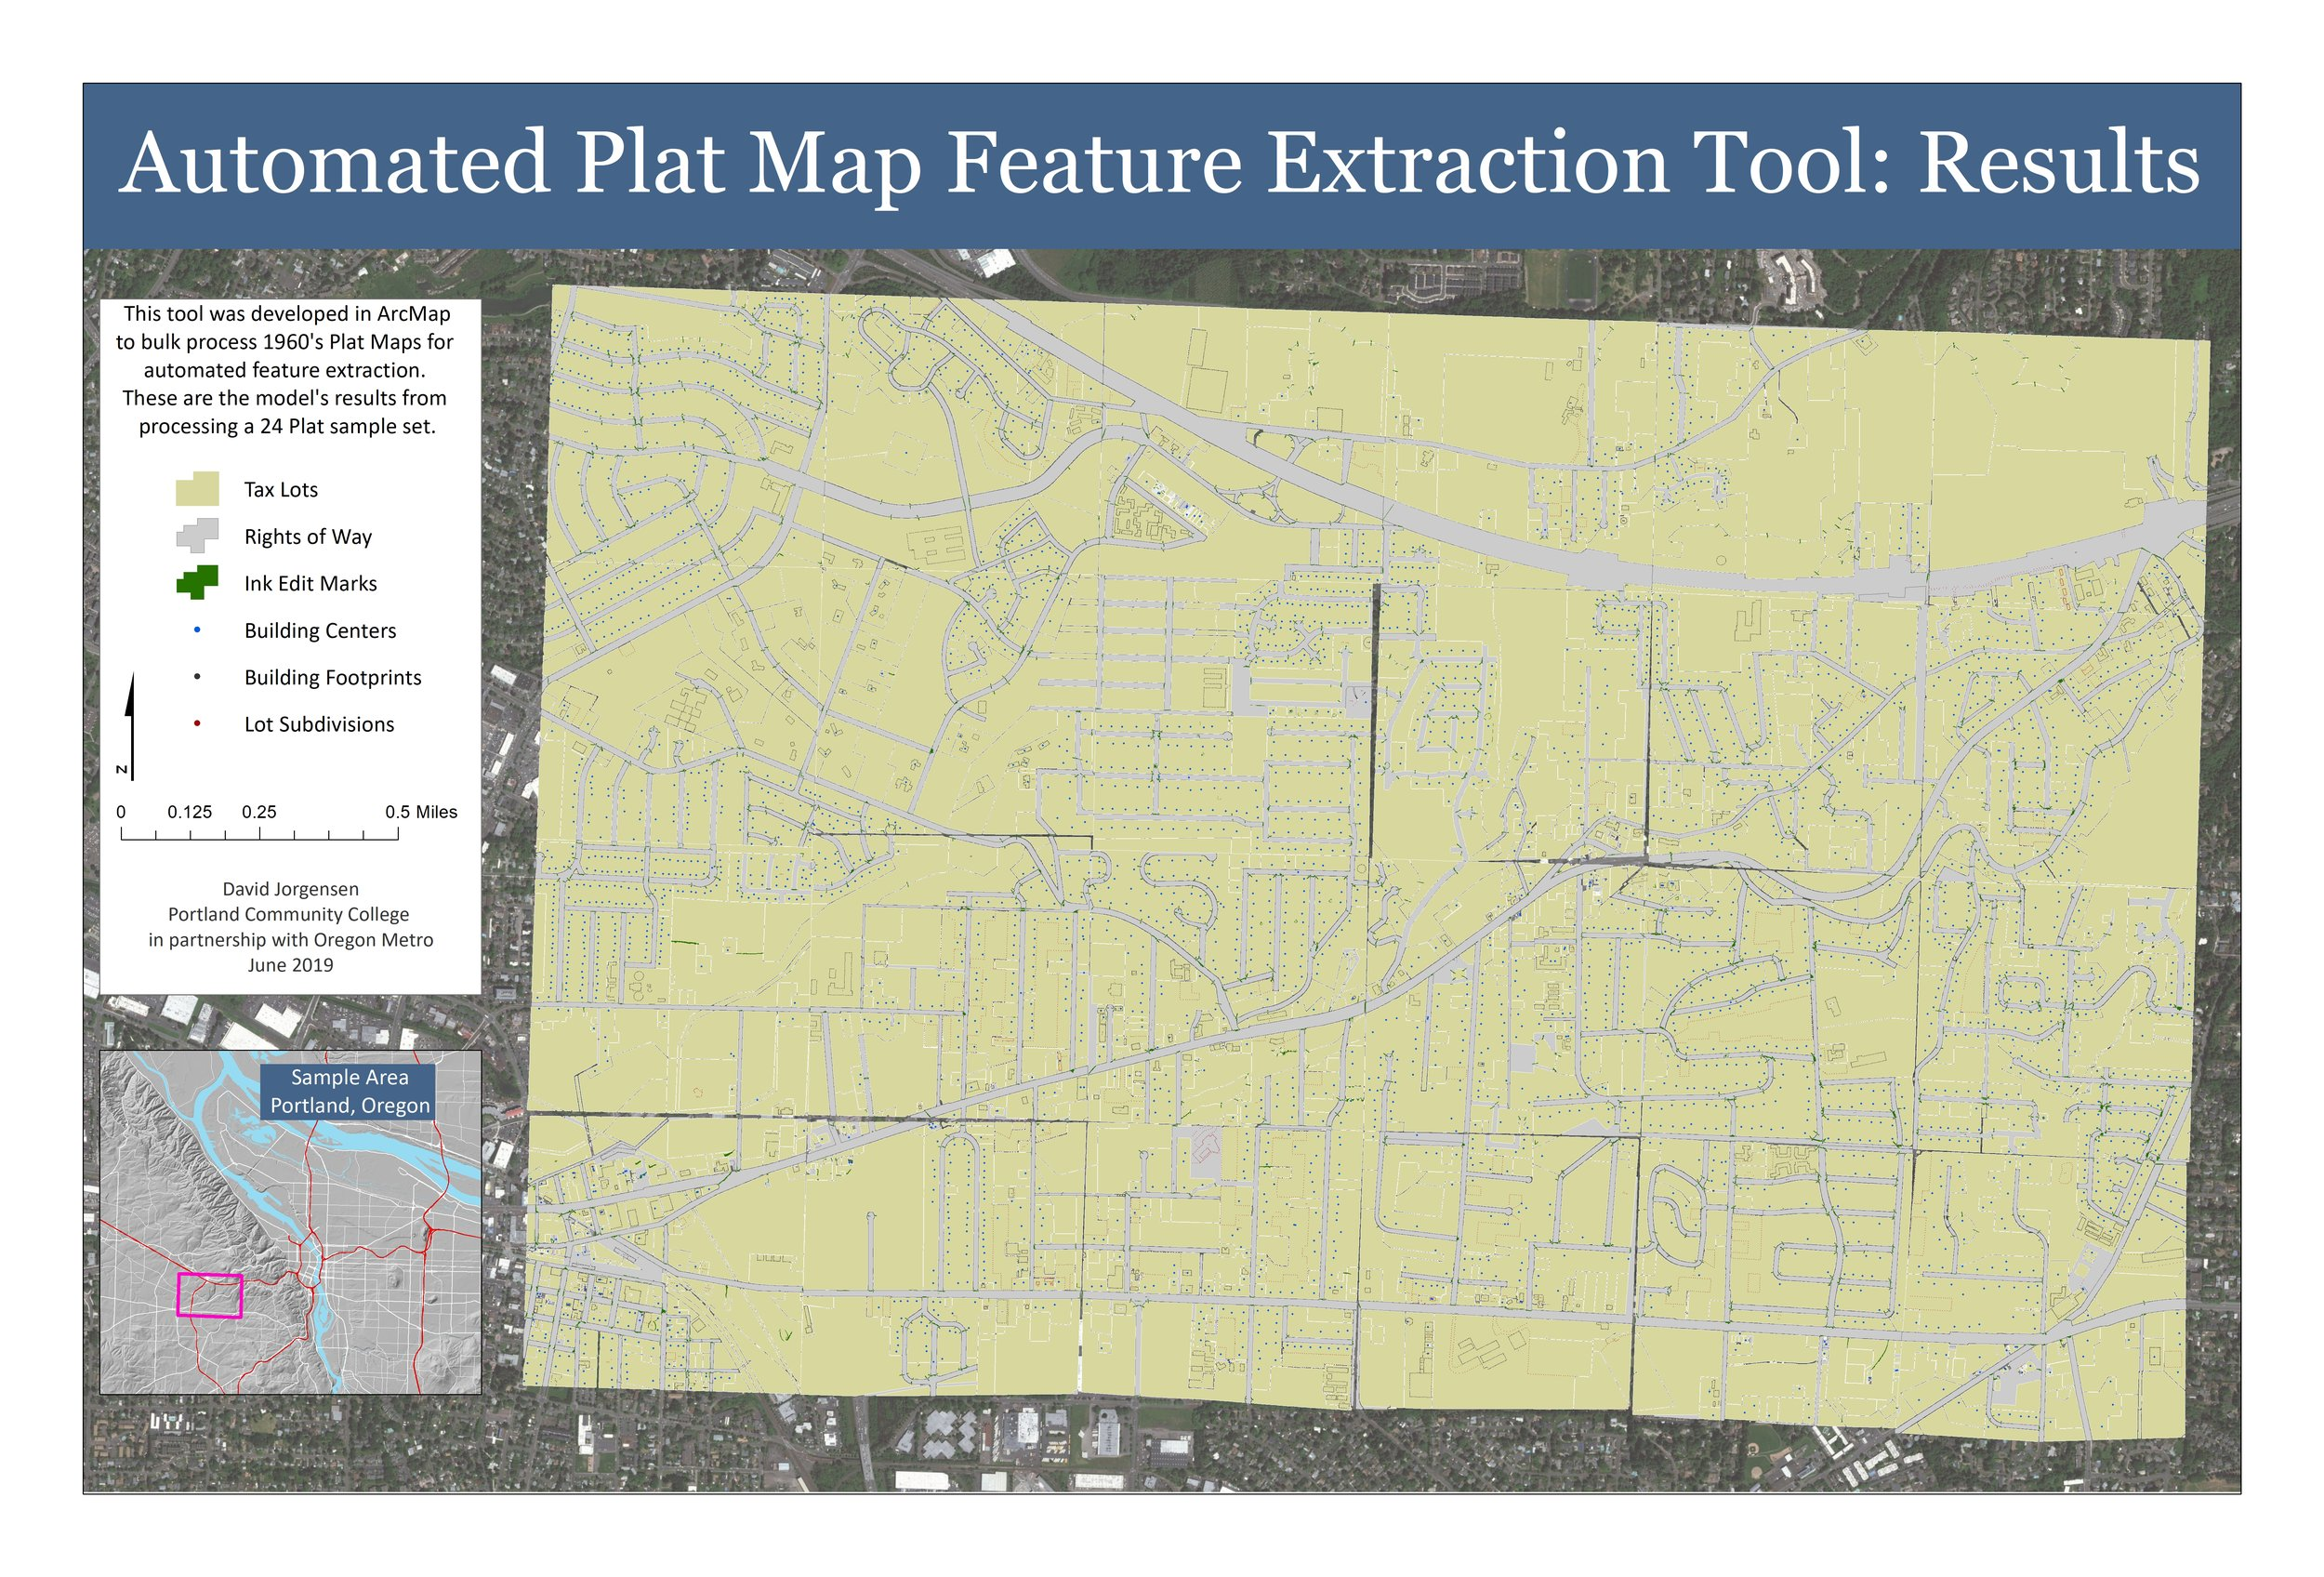 Automated Plat Map Feature Extraction